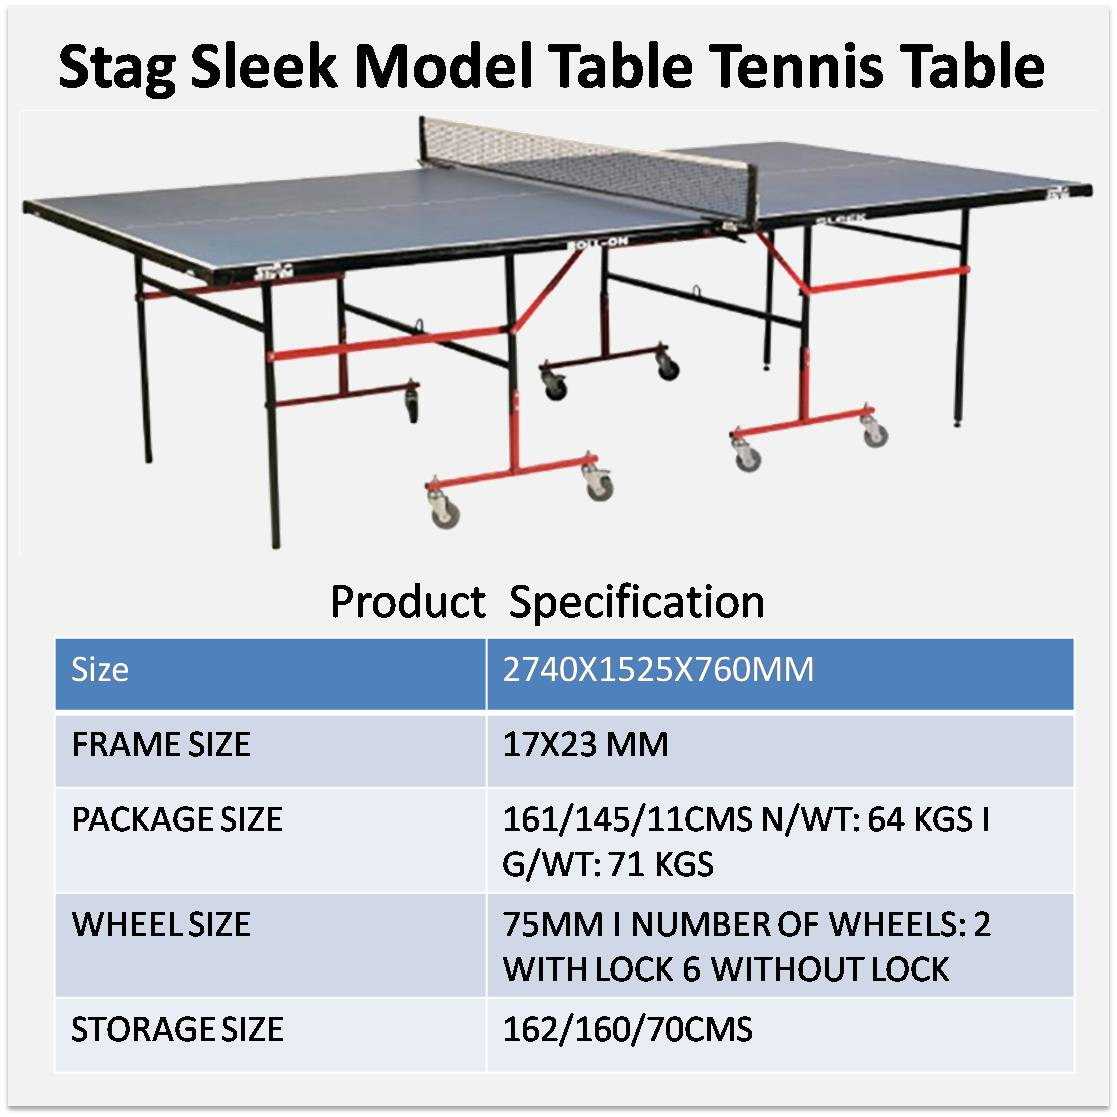 Stag Sleek Model Table Tennis Table   Buy Stag Sleek Model Table Tennis  Table Online At Lowest Prices In India   | Khelmart.com